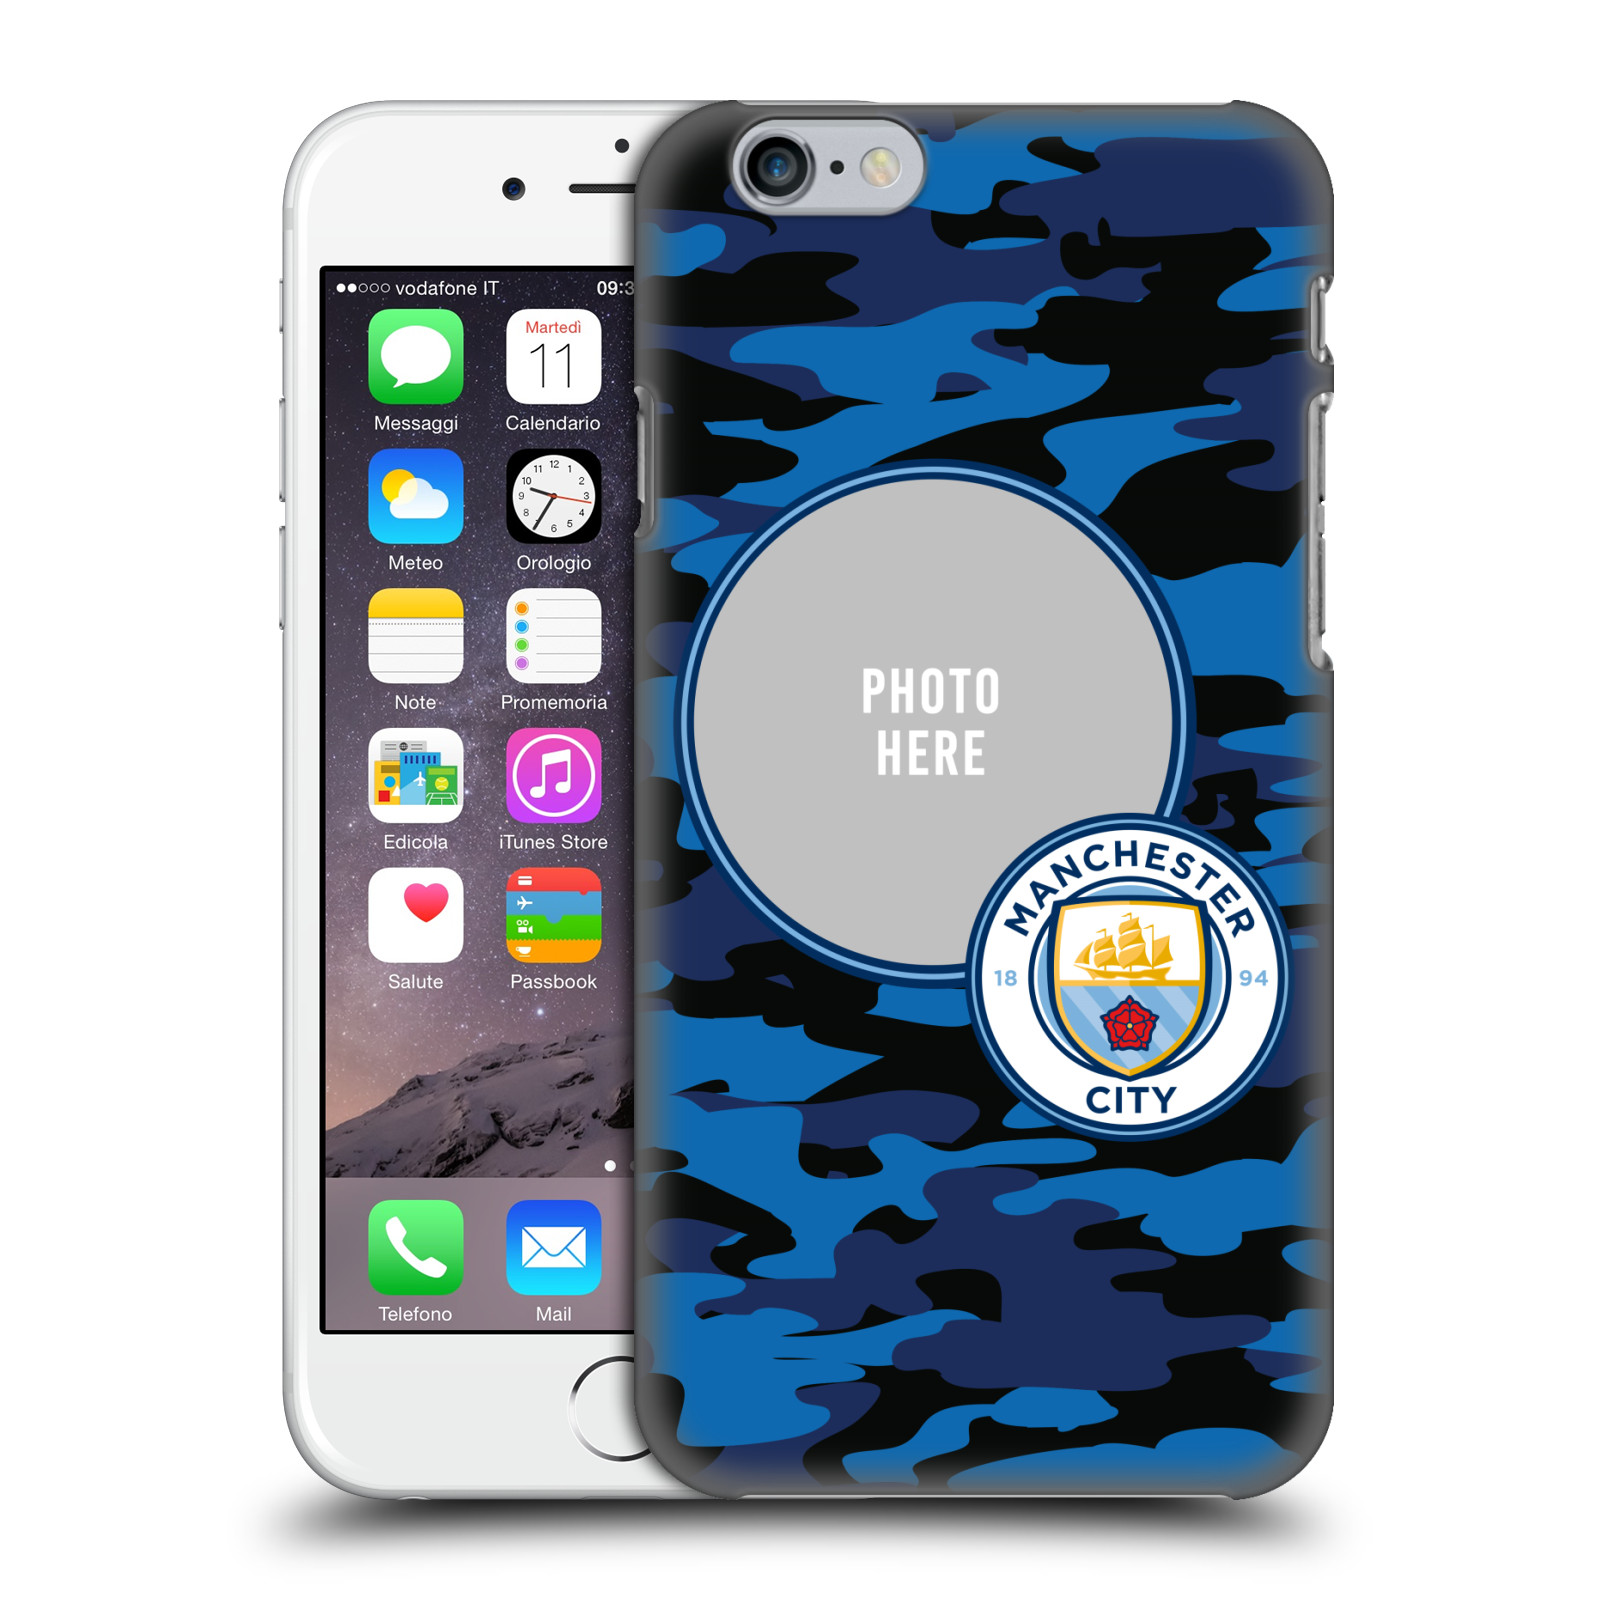 CUSTOM-MANCHESTER-CITY-FC-2017-18-LOGO-amp-KIT-BACK-COVER-FUR-APPLE-iPHONE-HANDYS